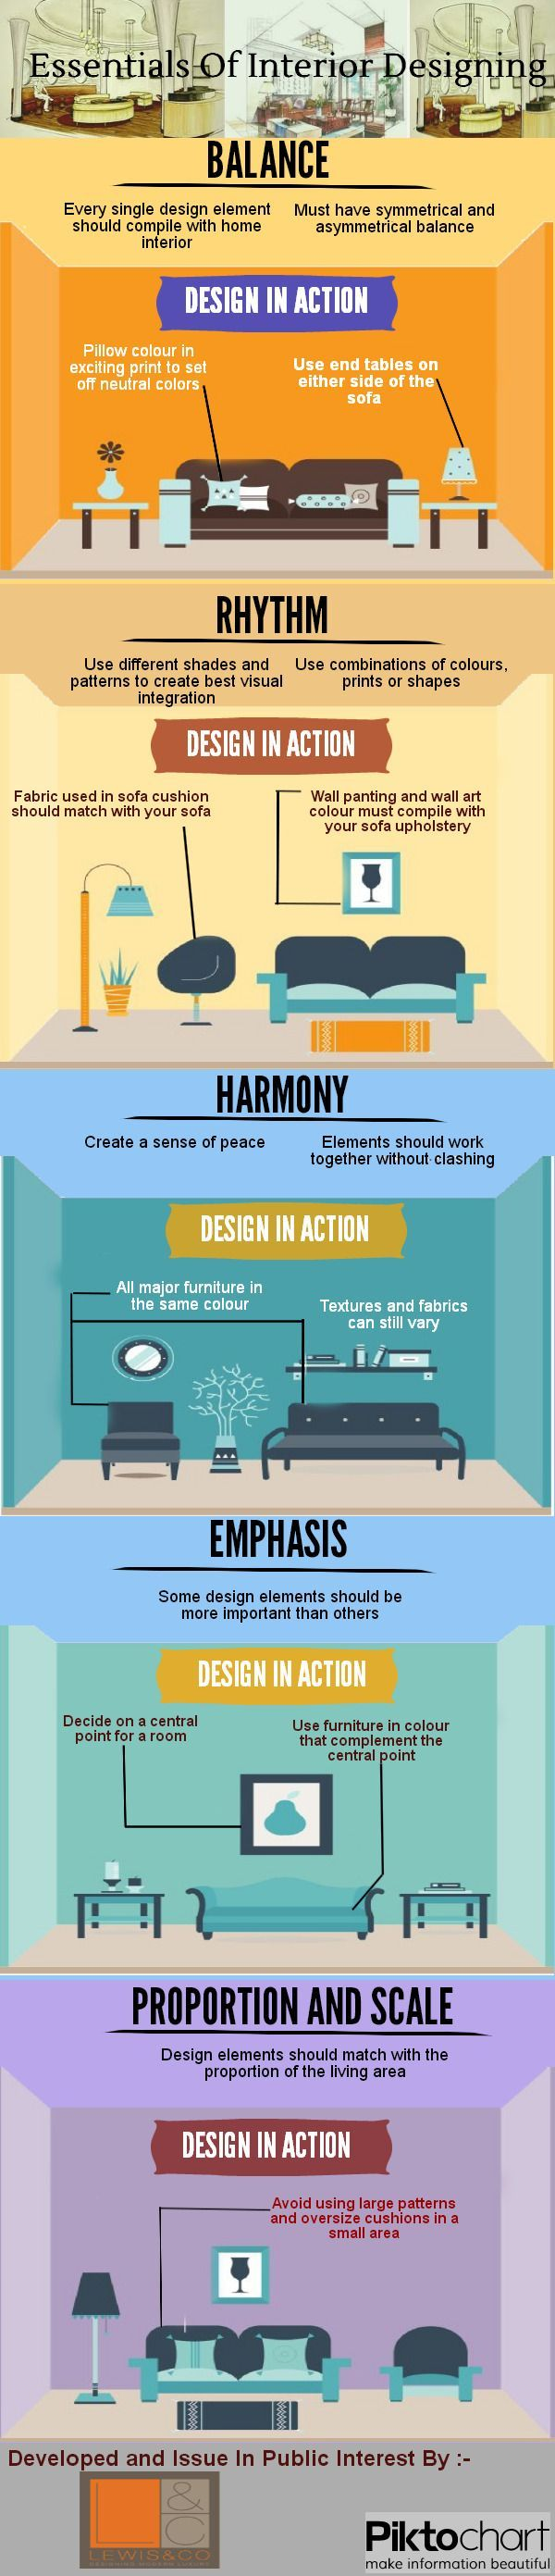 Interior Design Without Degree Trendy Design Concept Sheet